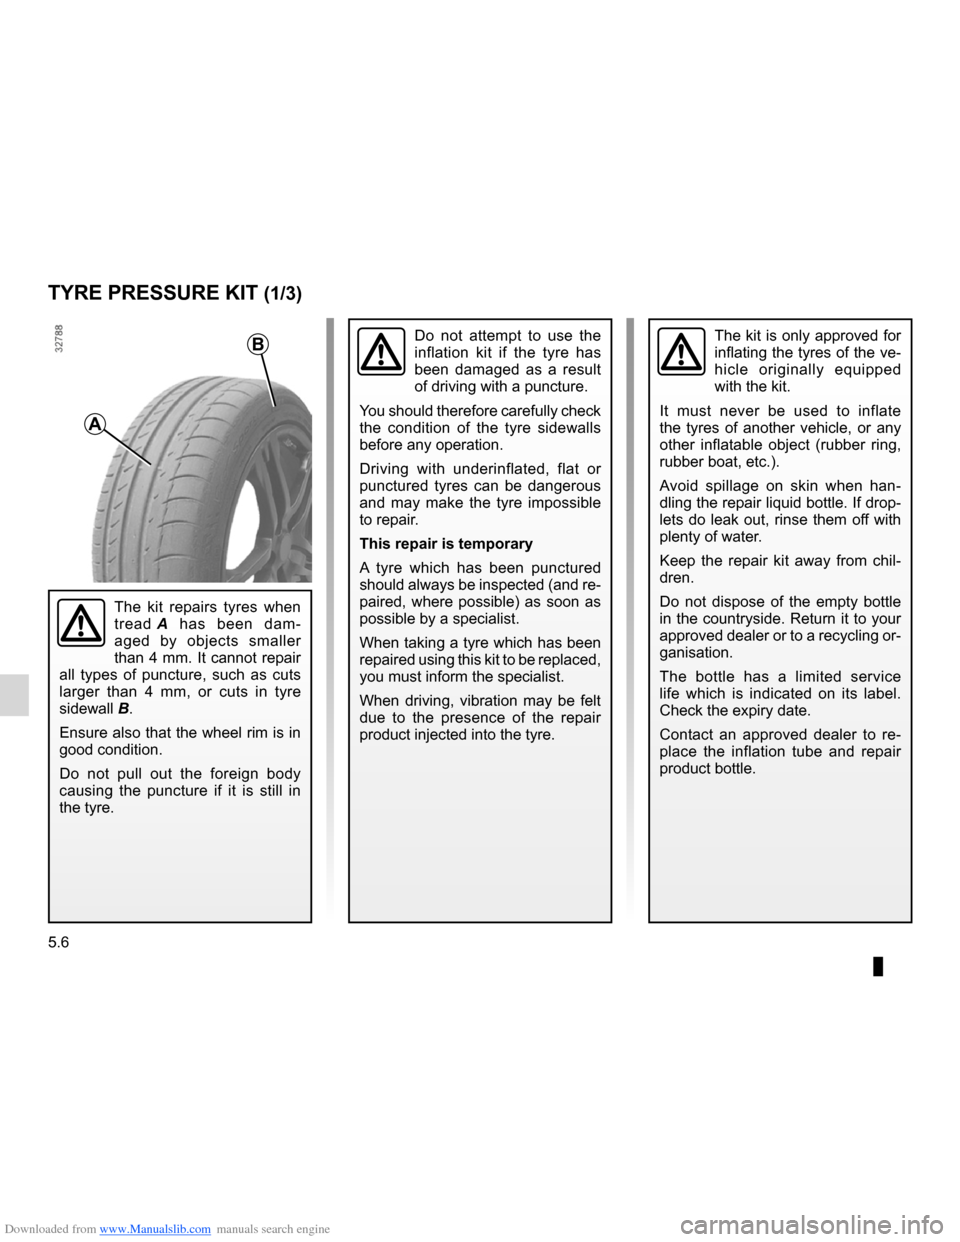 RENAULT CLIO 2012 X85 / 3.G Owners Manual, Page 198